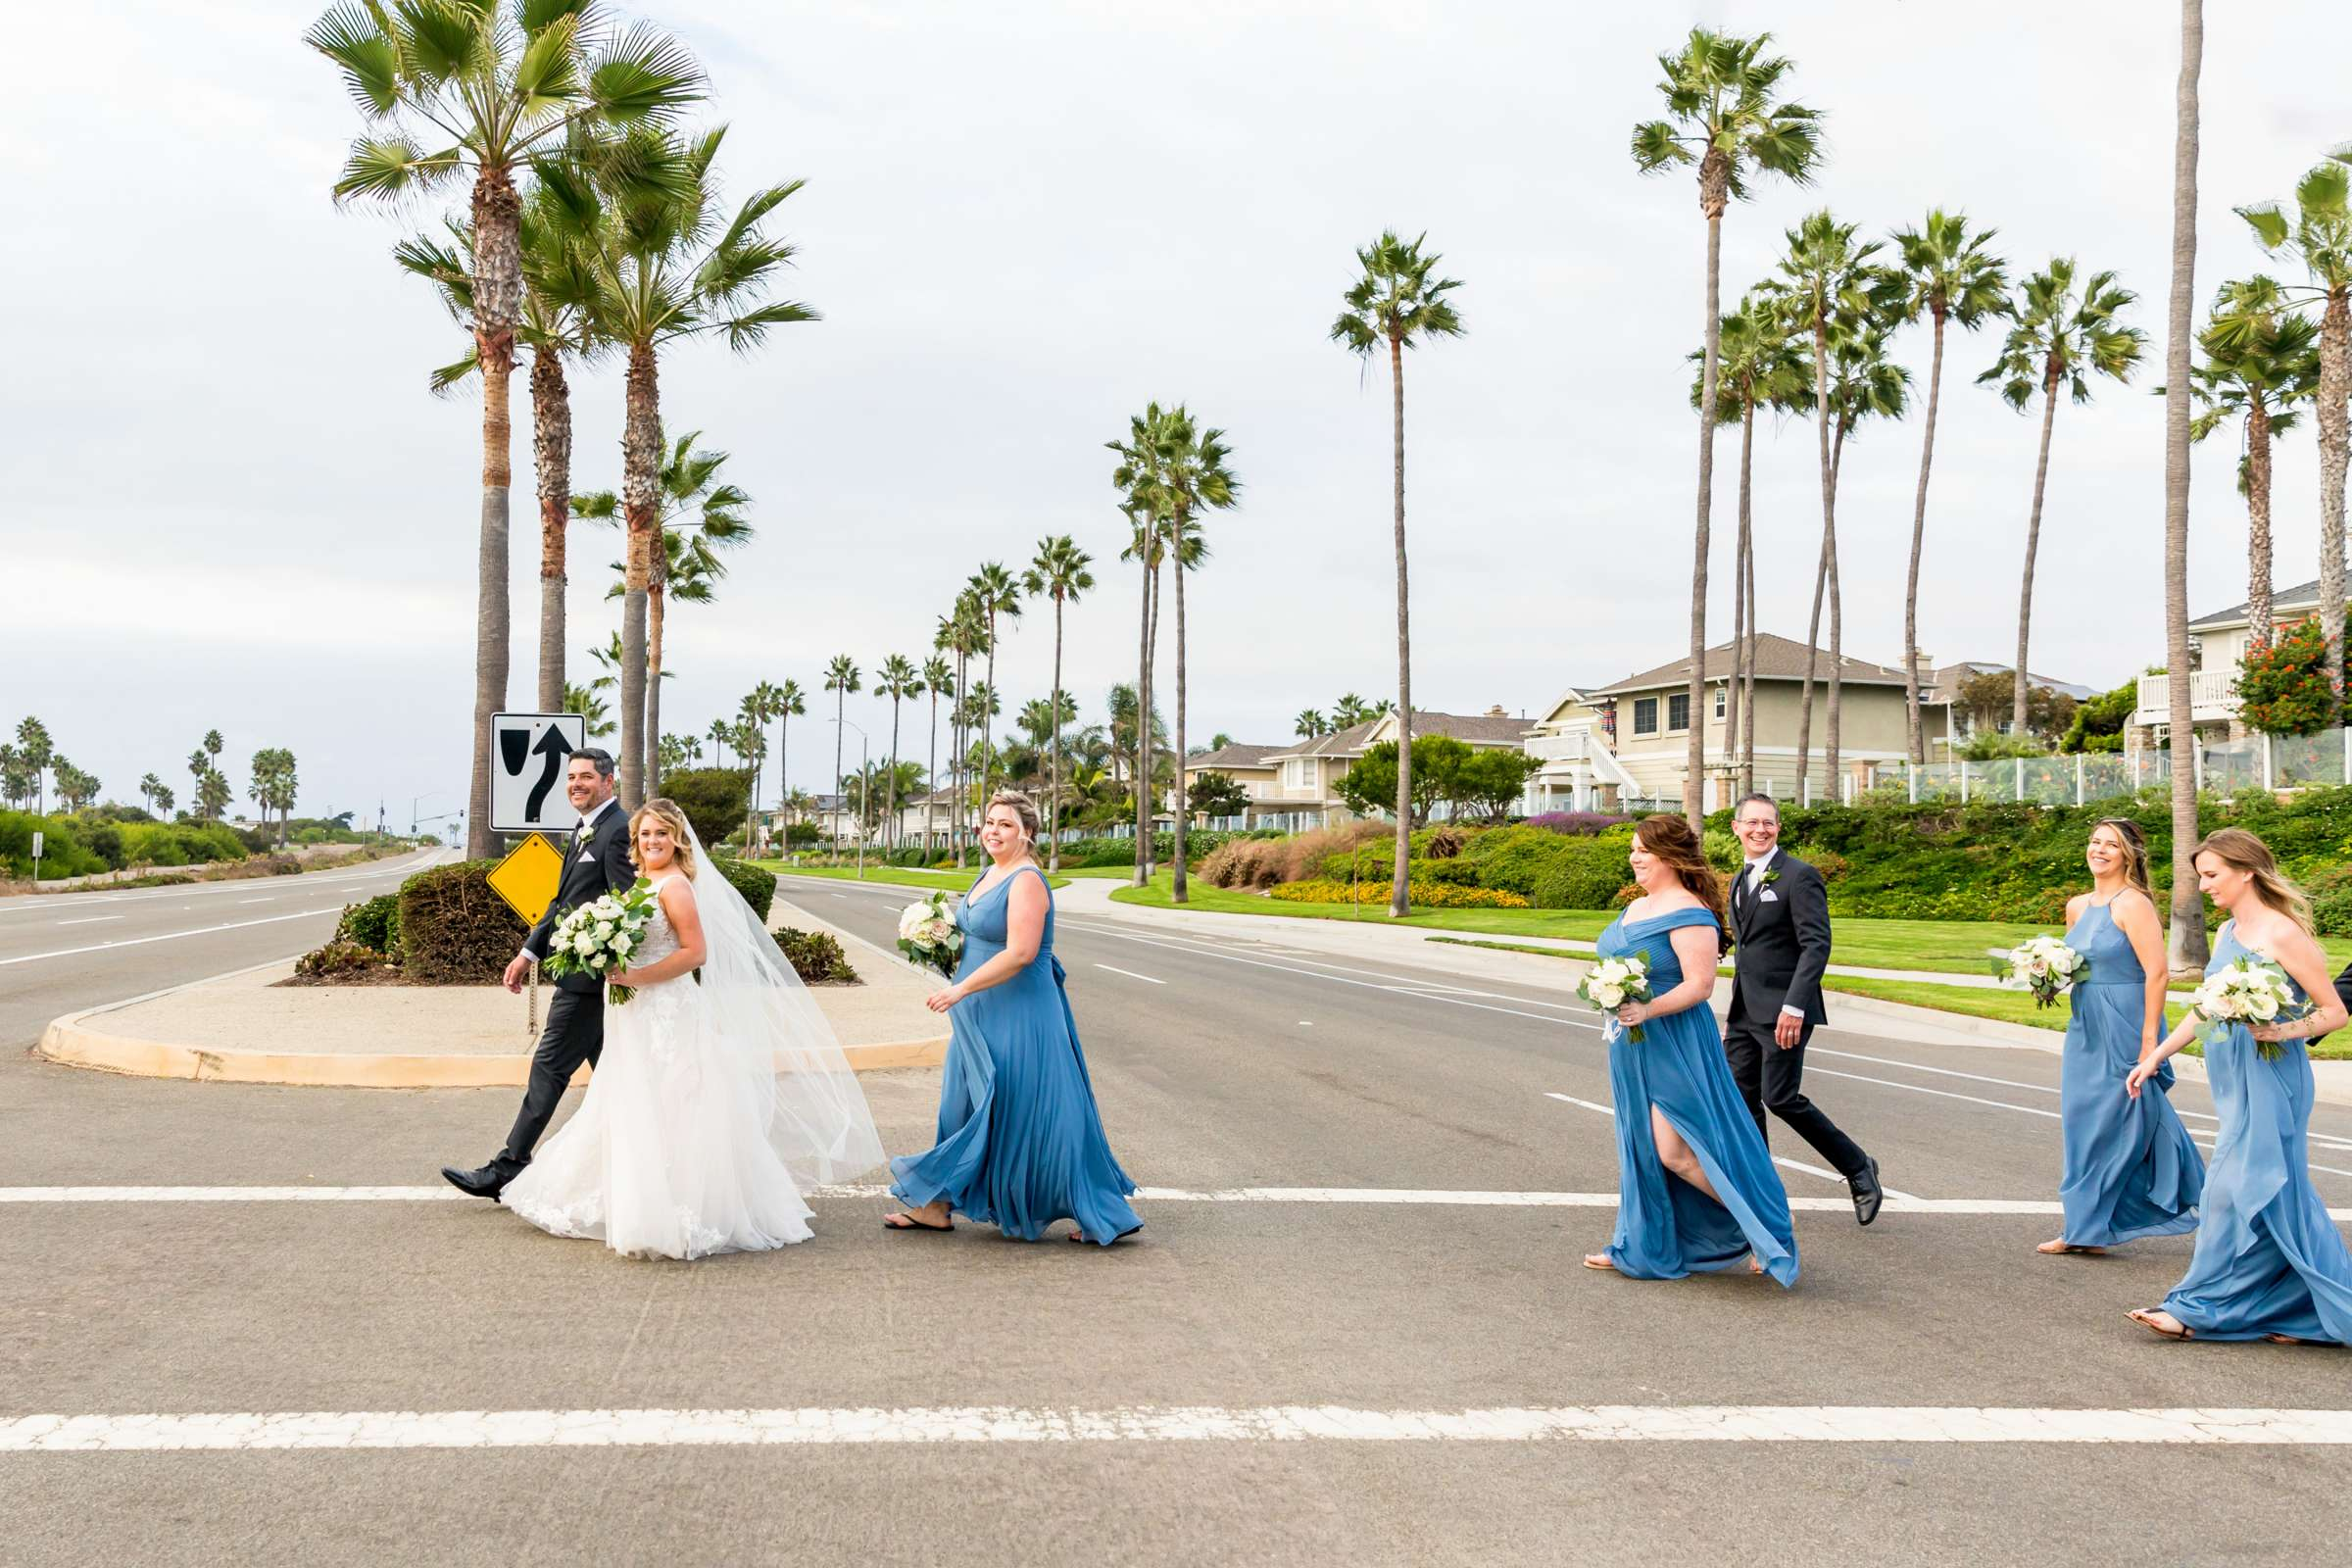 Cape Rey Carlsbad, A Hilton Resort Wedding, Michelle and Justin Wedding Photo #76 by True Photography